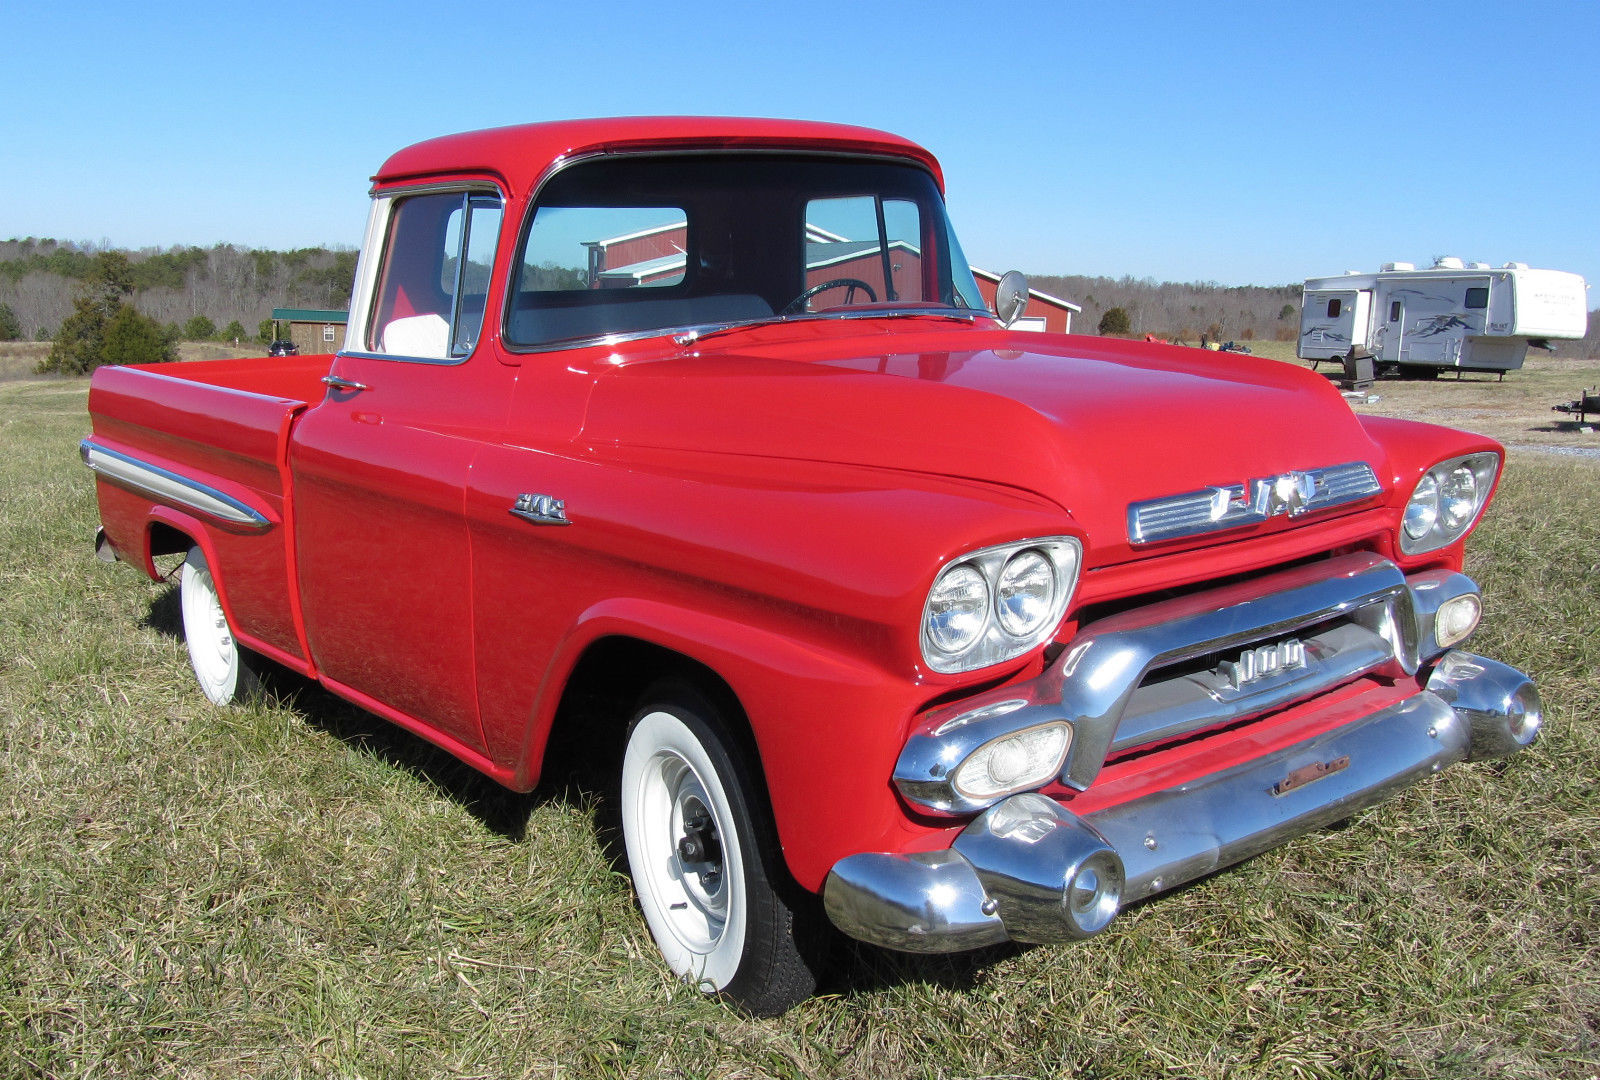 1958 gmc fleetside pickup classic truck for sale in boiling springs south carolina united states. Black Bedroom Furniture Sets. Home Design Ideas